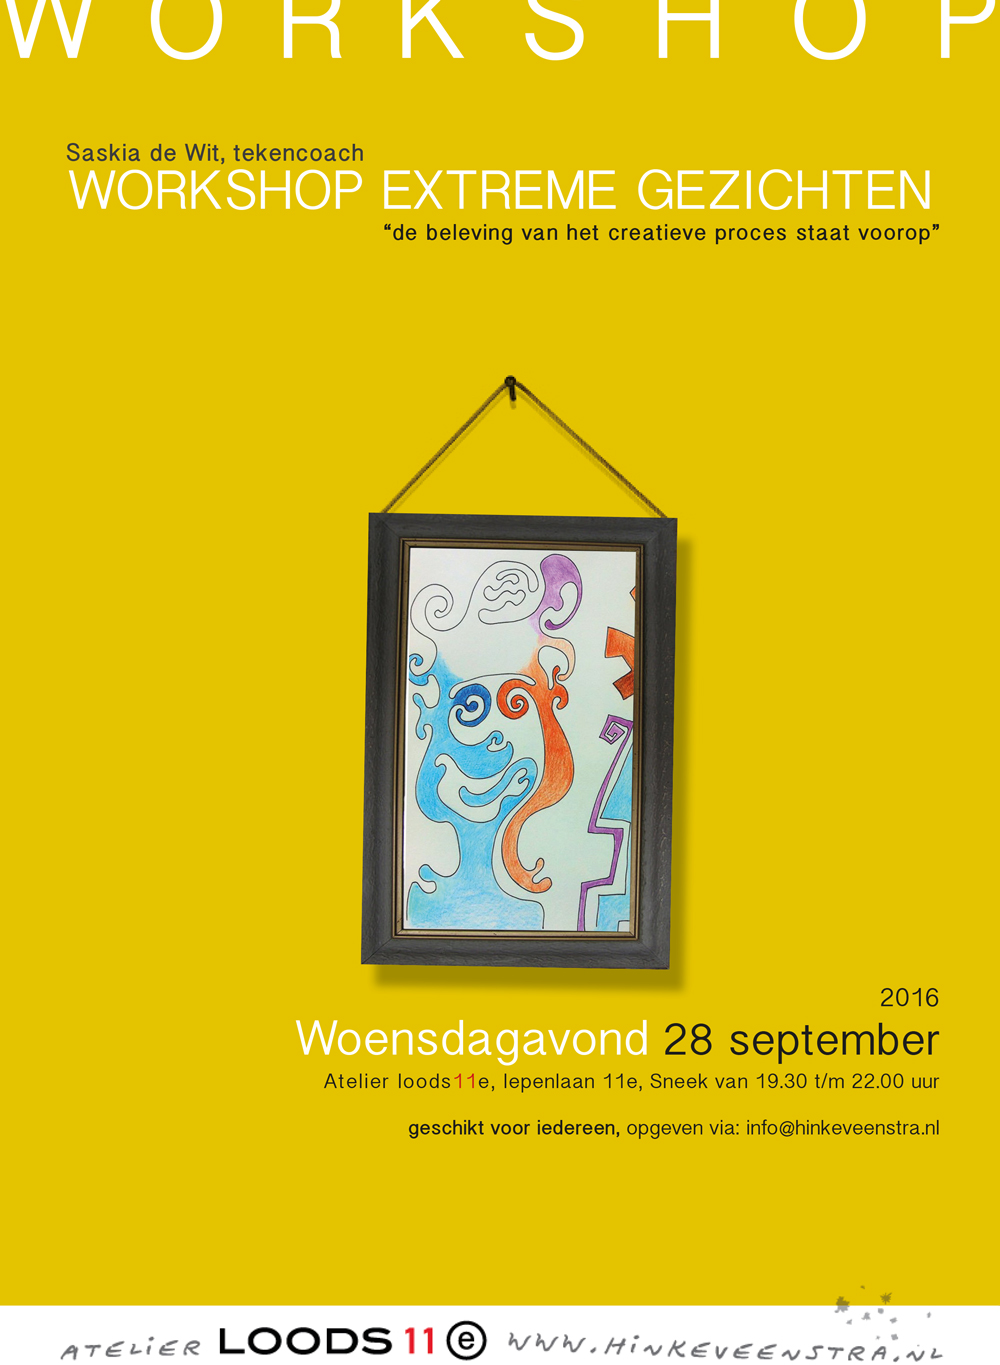 poster-workshop-iepenlaan-11e-,1